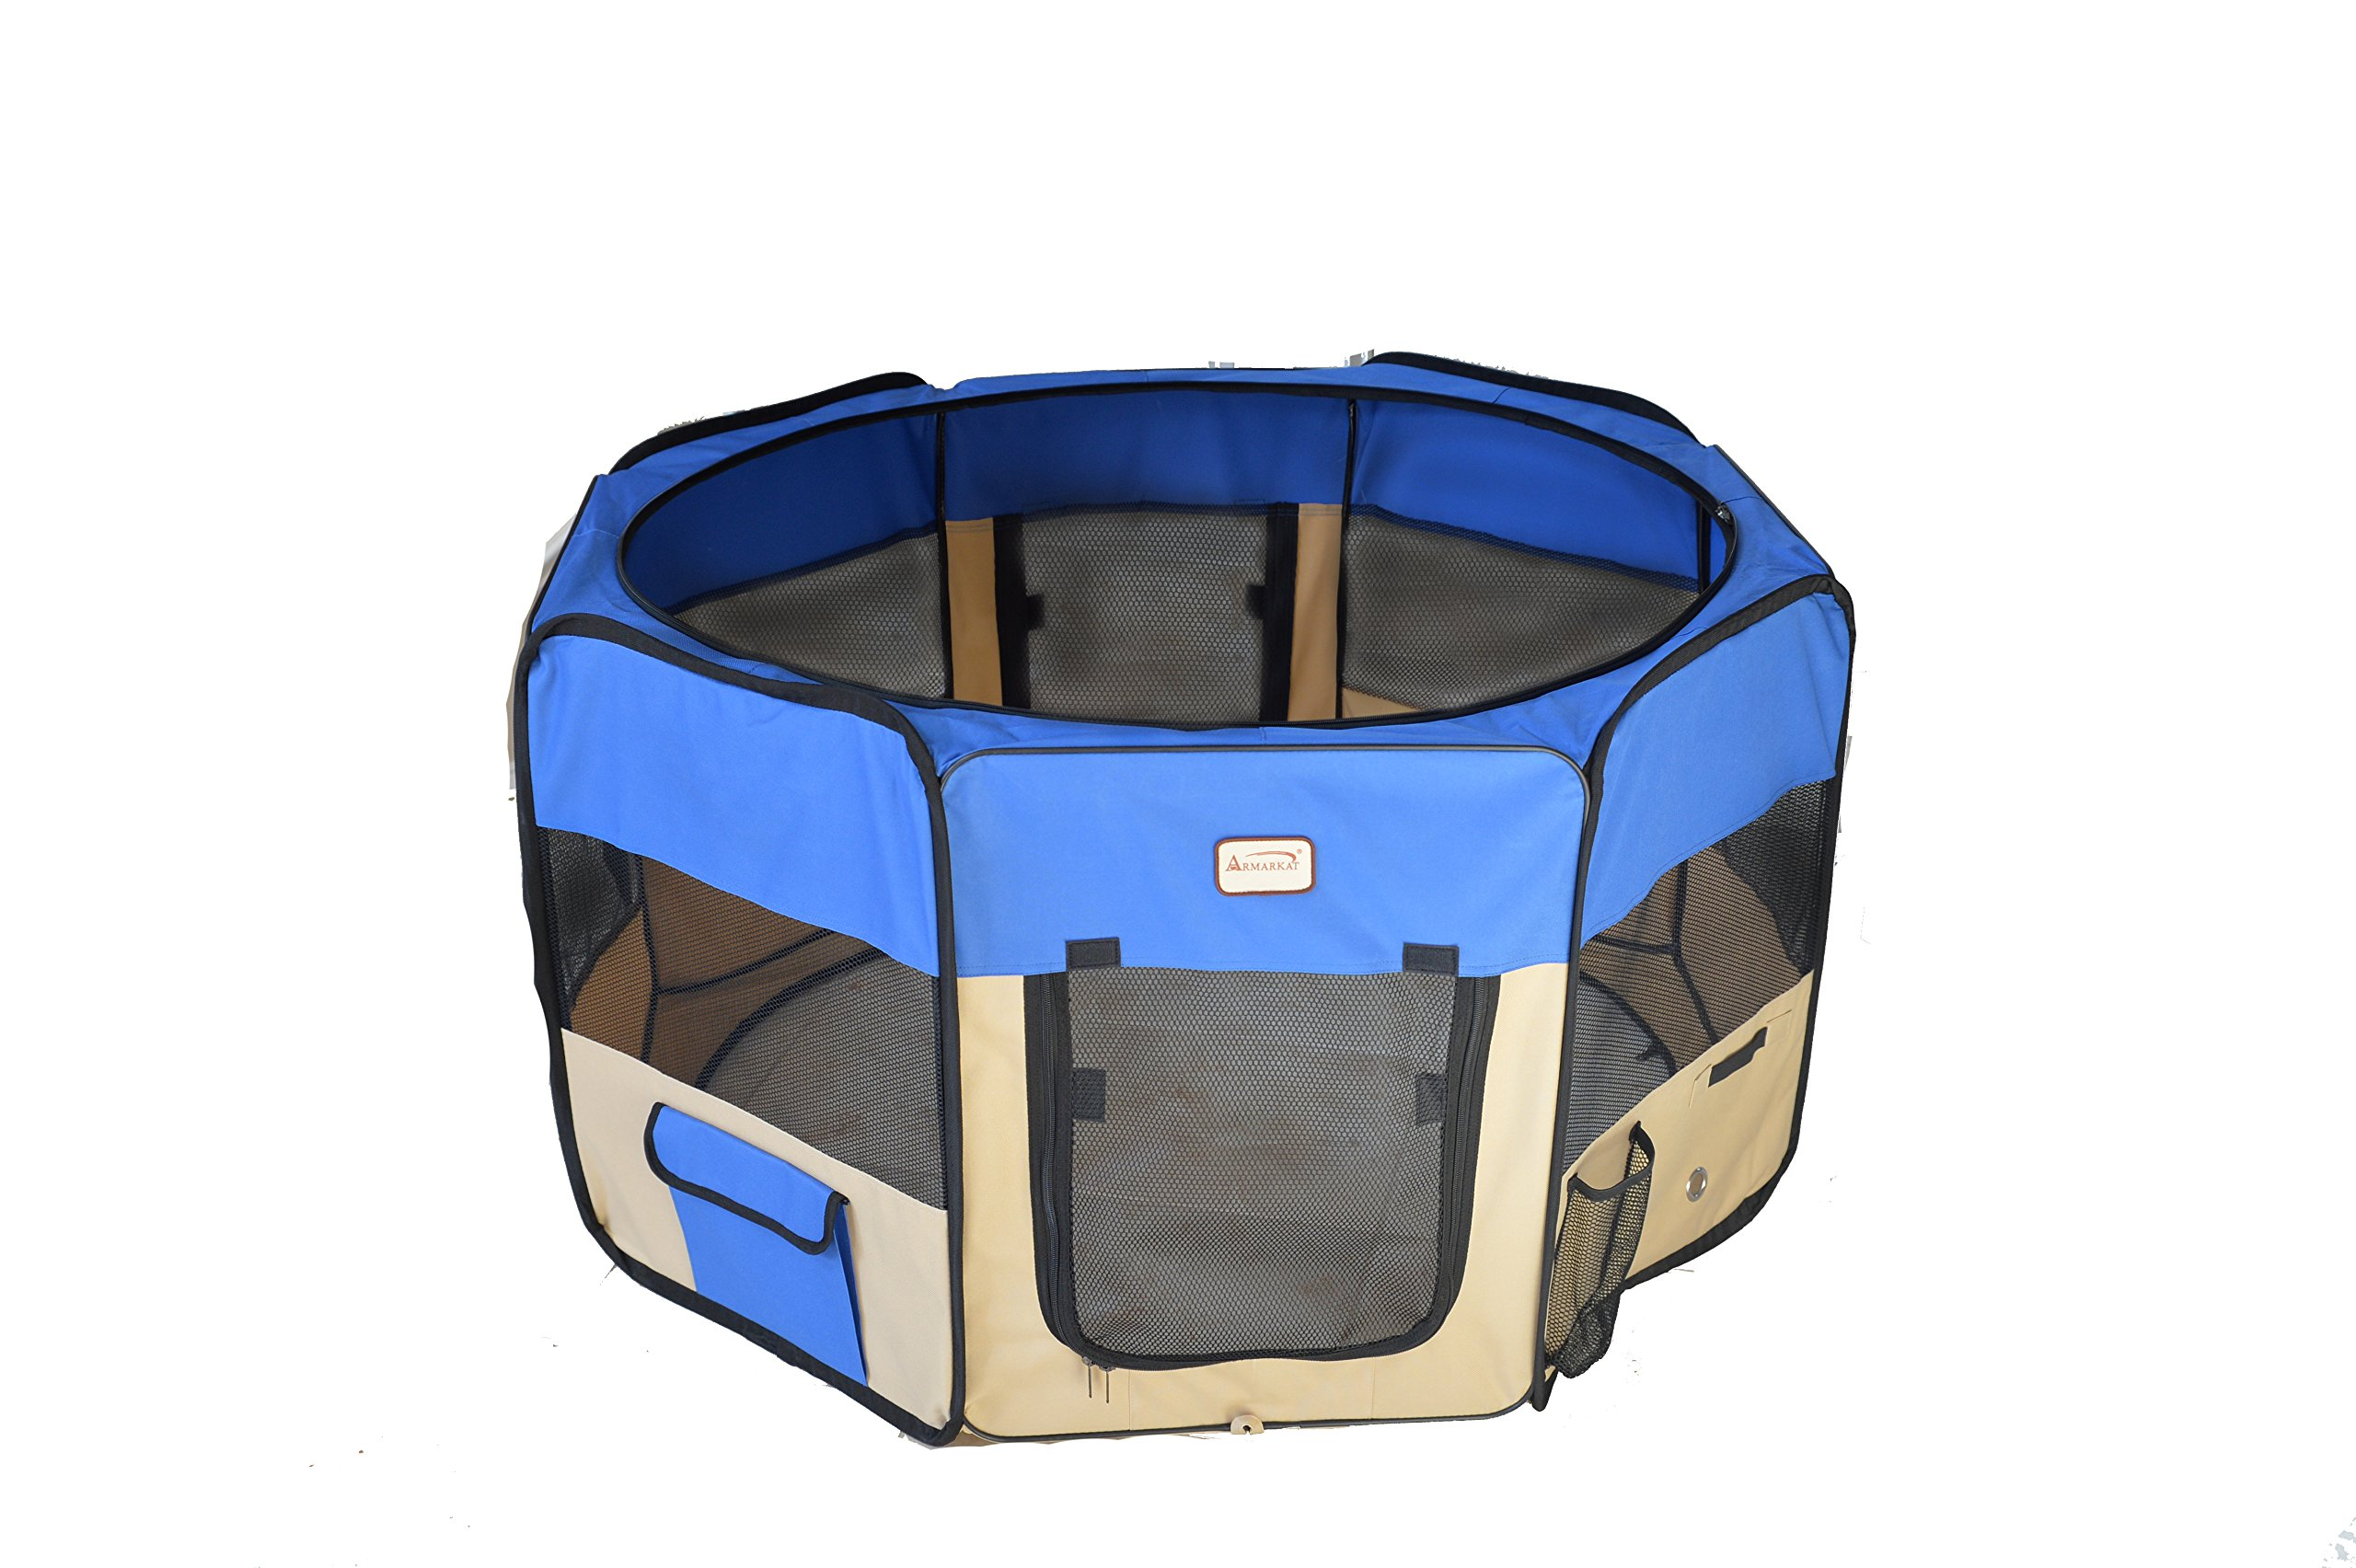 Armarkat PP001B Blue and Beige Portable Playpen by Armarkat